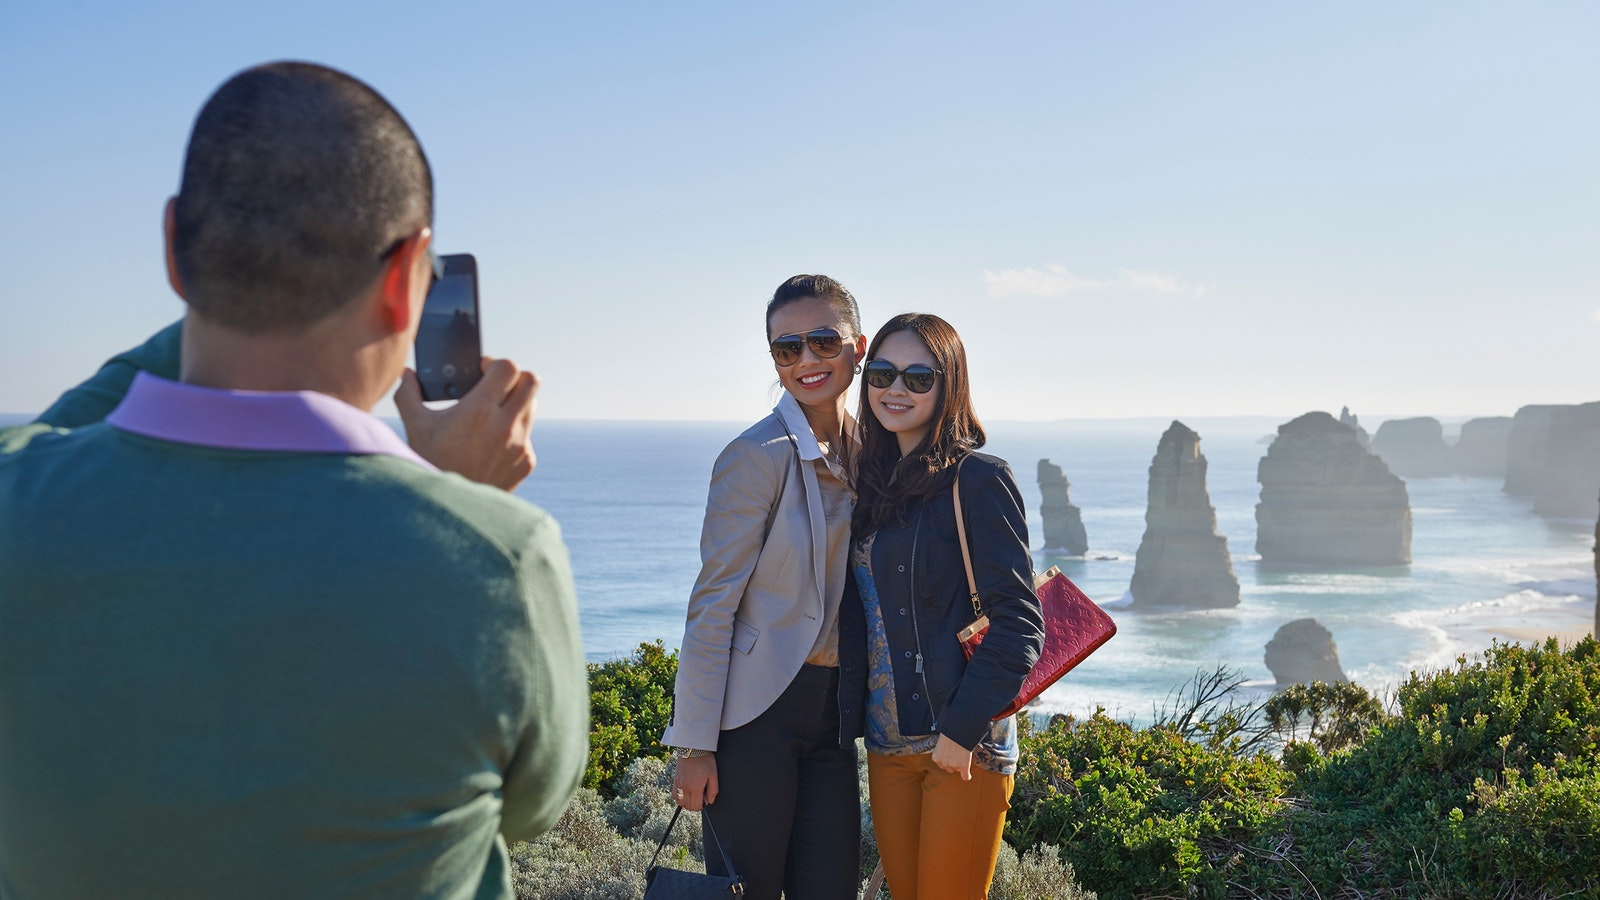 Be whisked to the 12 Apostles and back to Melbourne in three hours with Microflite